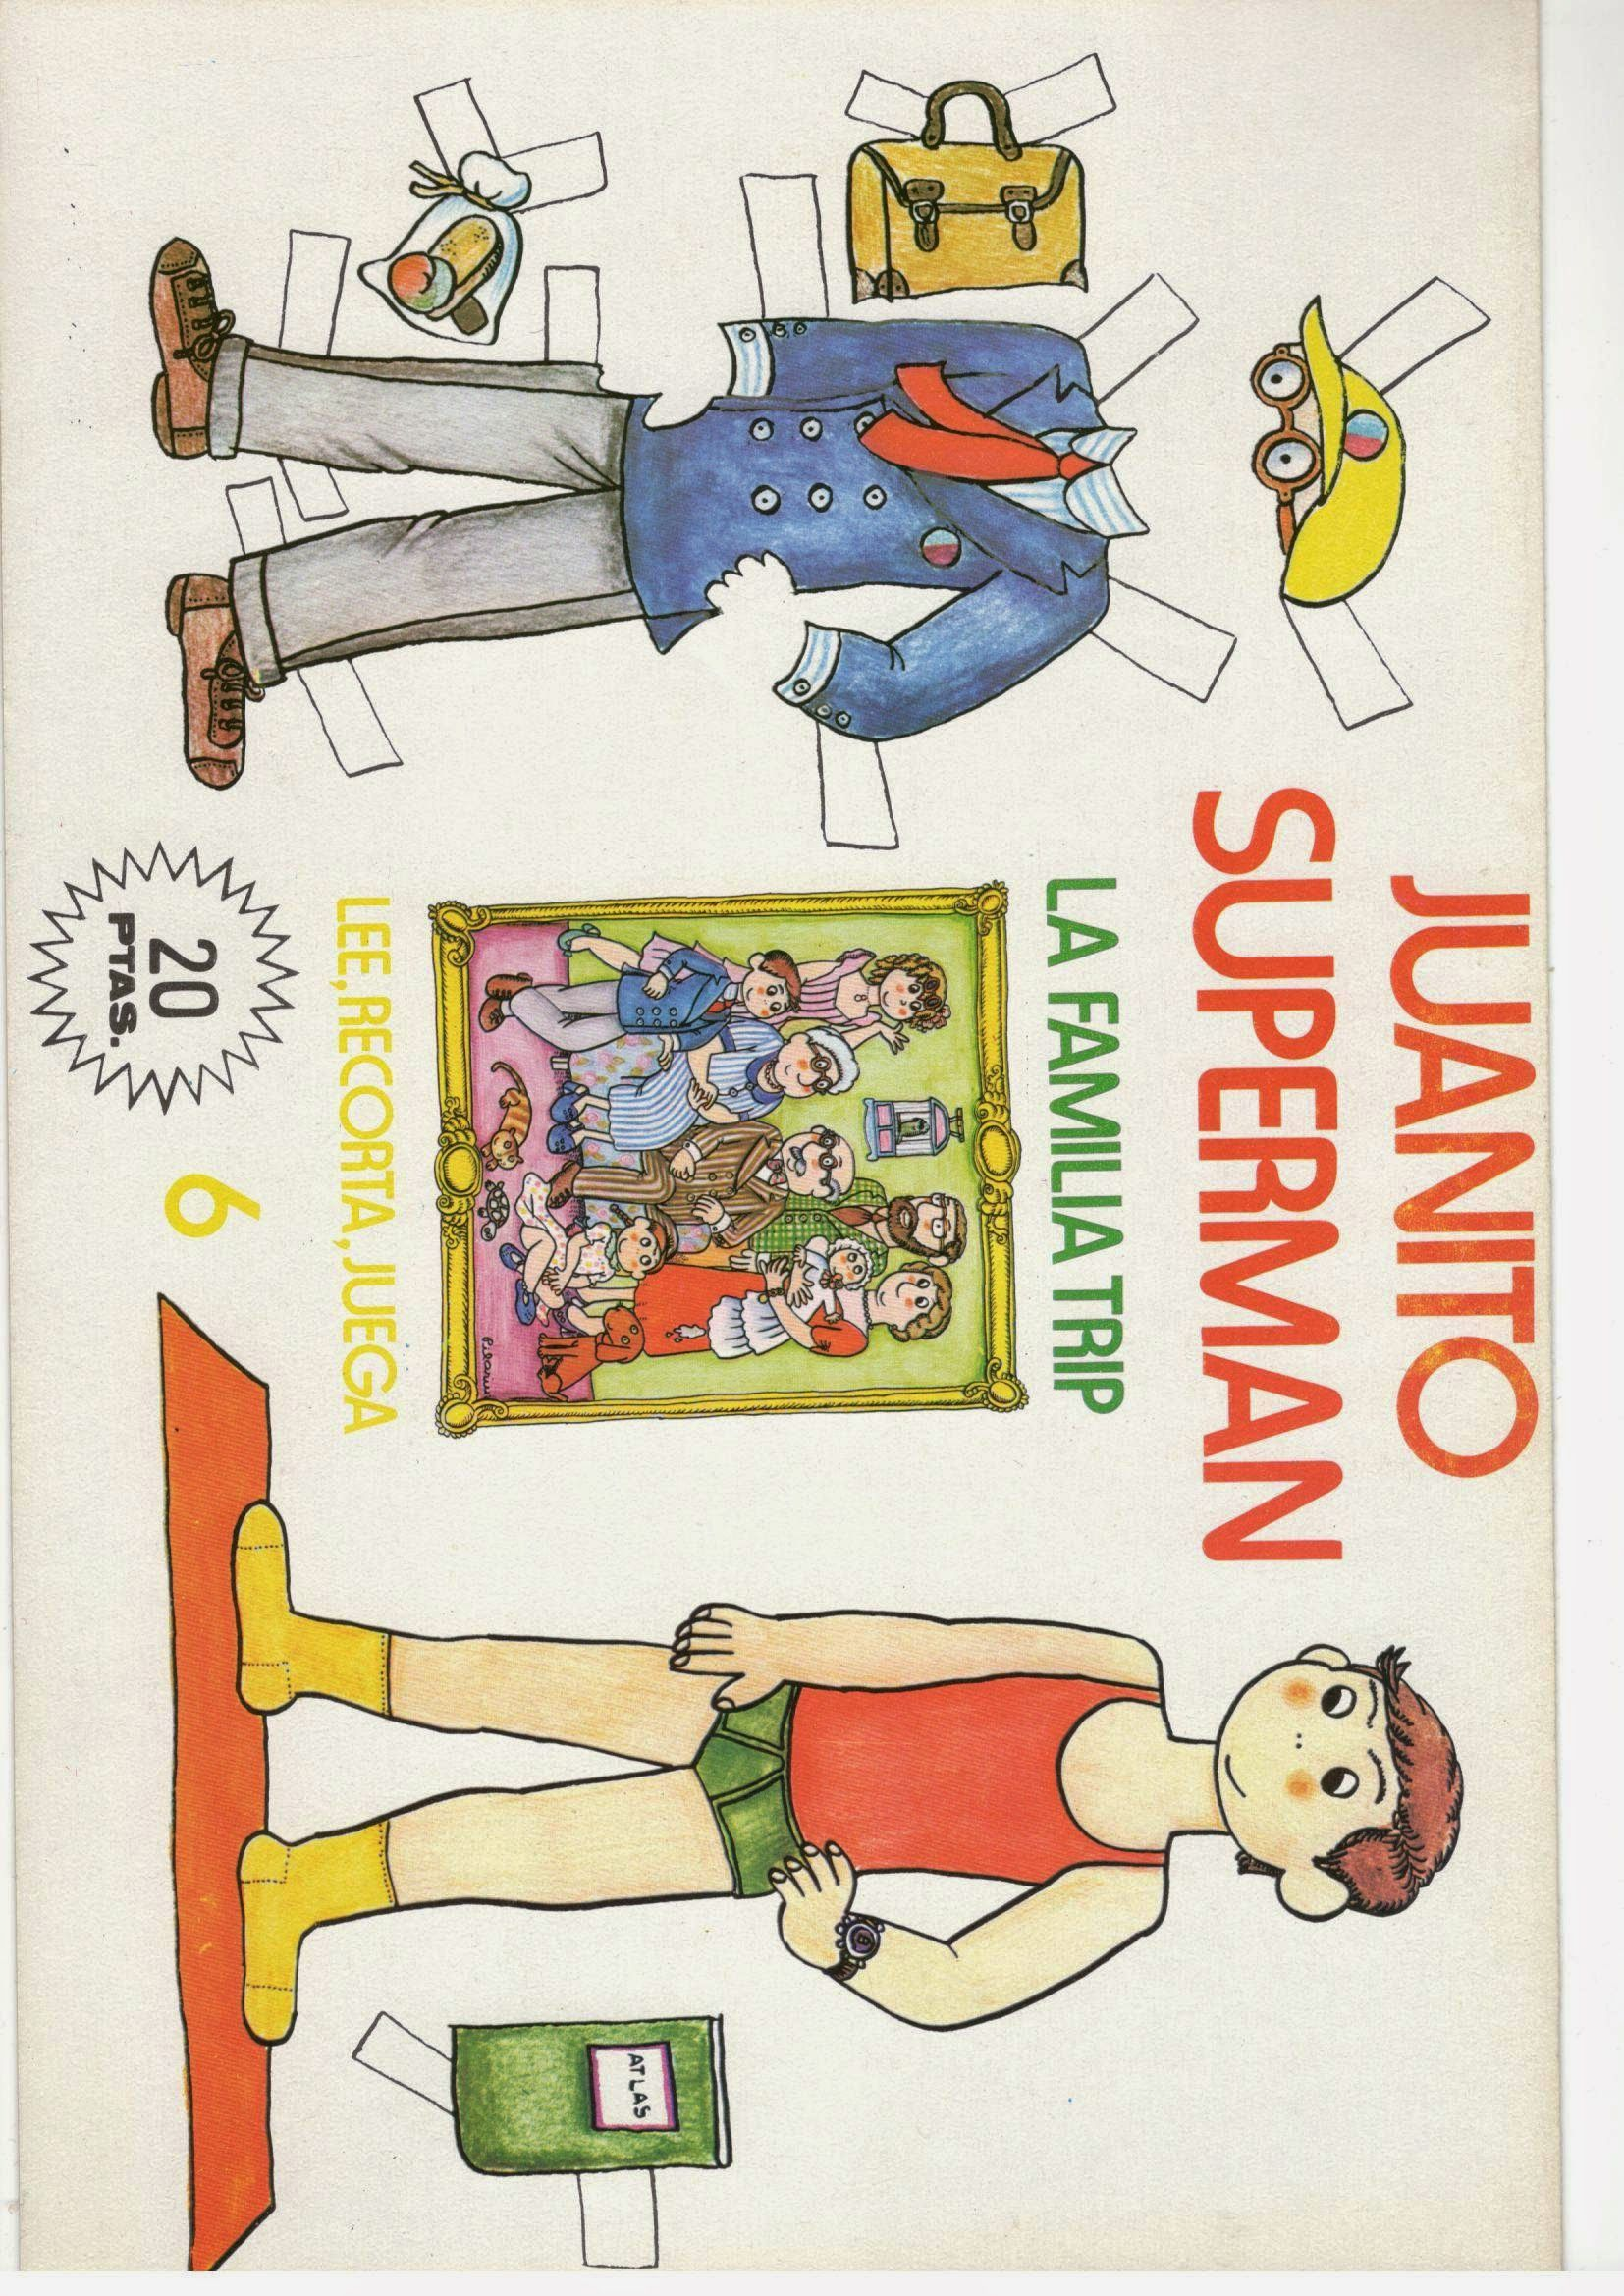 Spanish JUANITO SUPERMAN LA FAMILIA TRIP English LITTLE JOHN OR JOHNNY SUPERMAN FAMILY TRIP from Ѯ ULLA DAHLSTEDT'S GALLERY